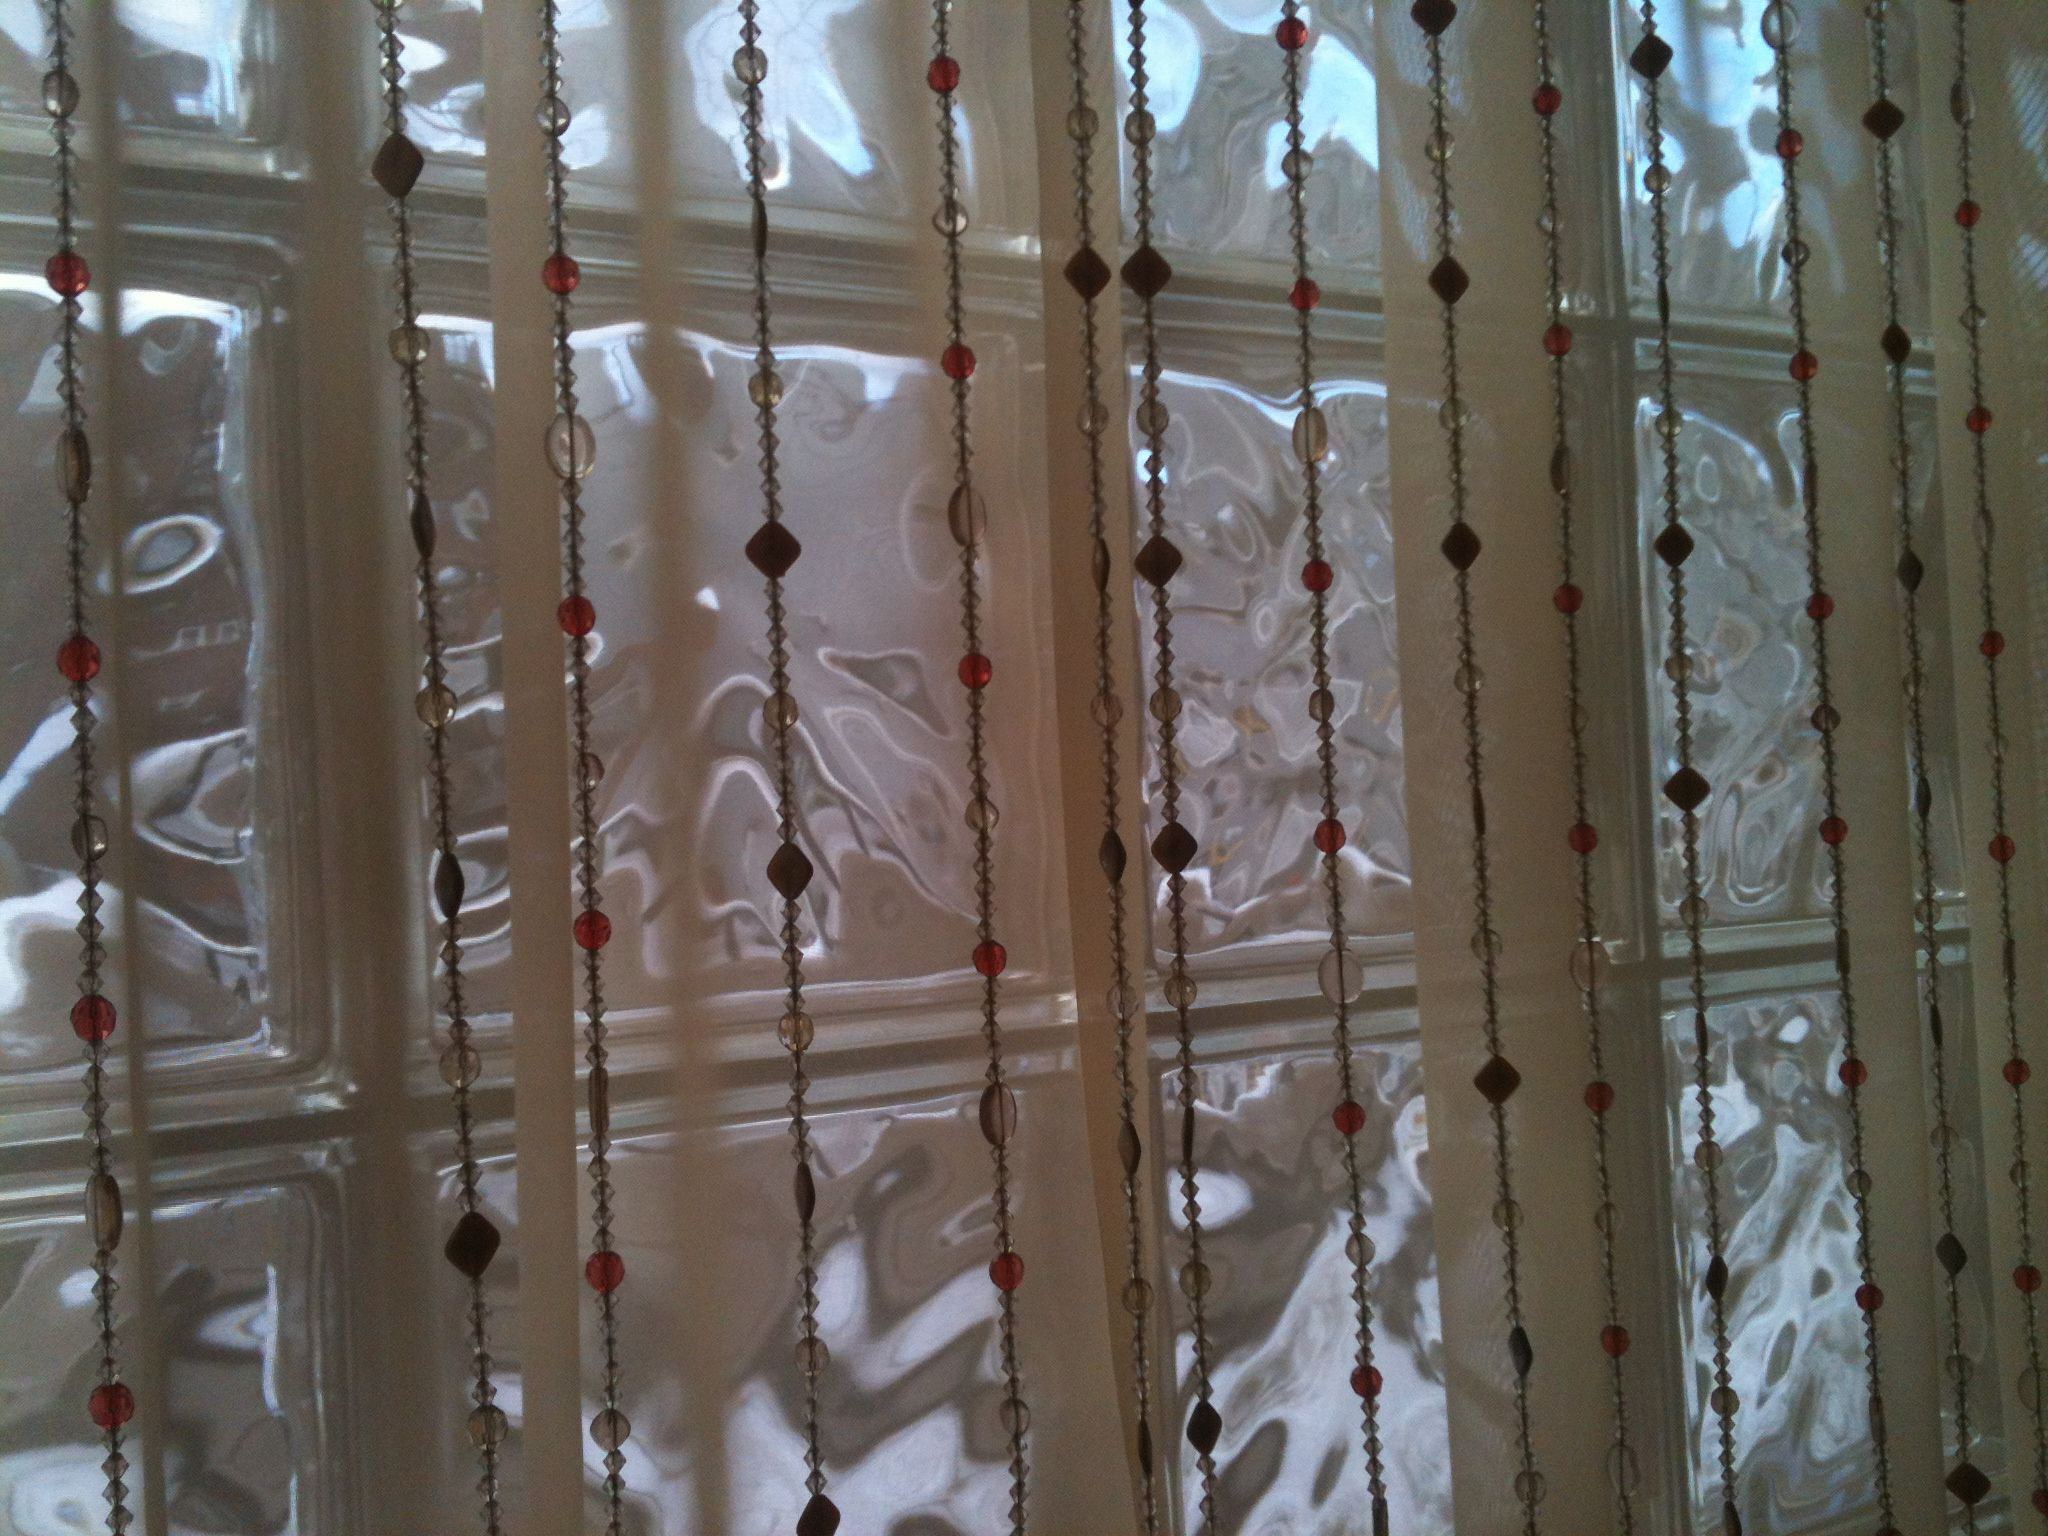 Beads And Sheer Curtains